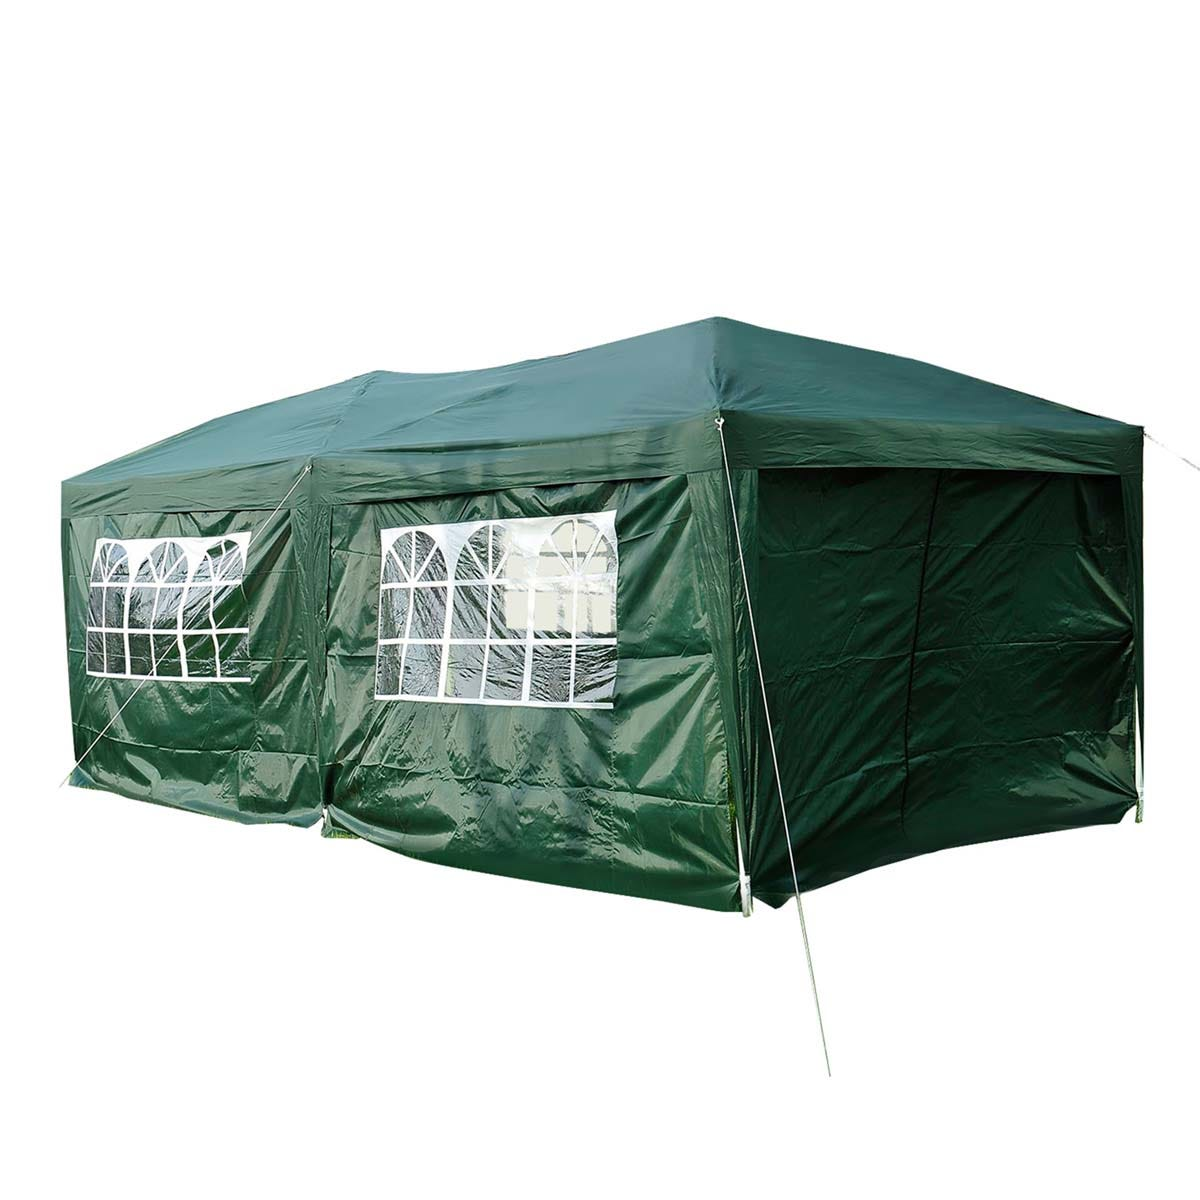 Outsunny 3 x 6m Garden Pop Up Gazebo with Sides- Green